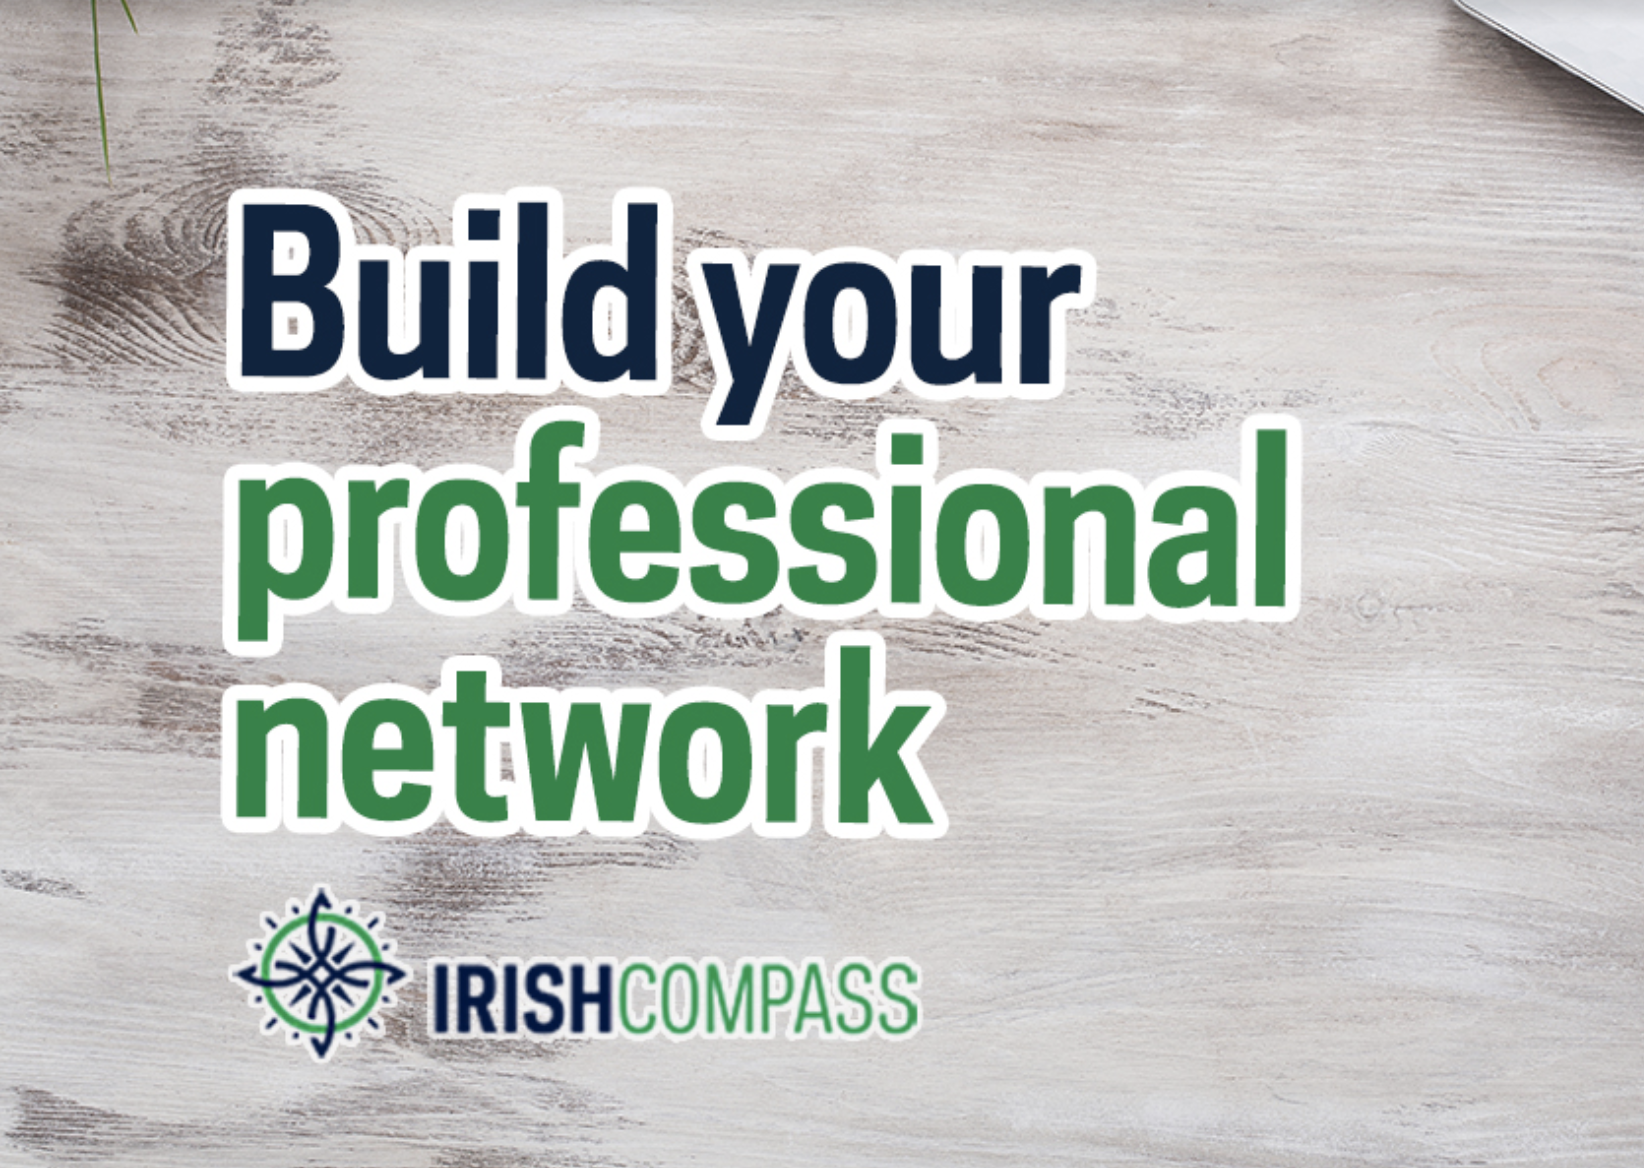 Irish Compass: Notre Dame's Online Networking Resource